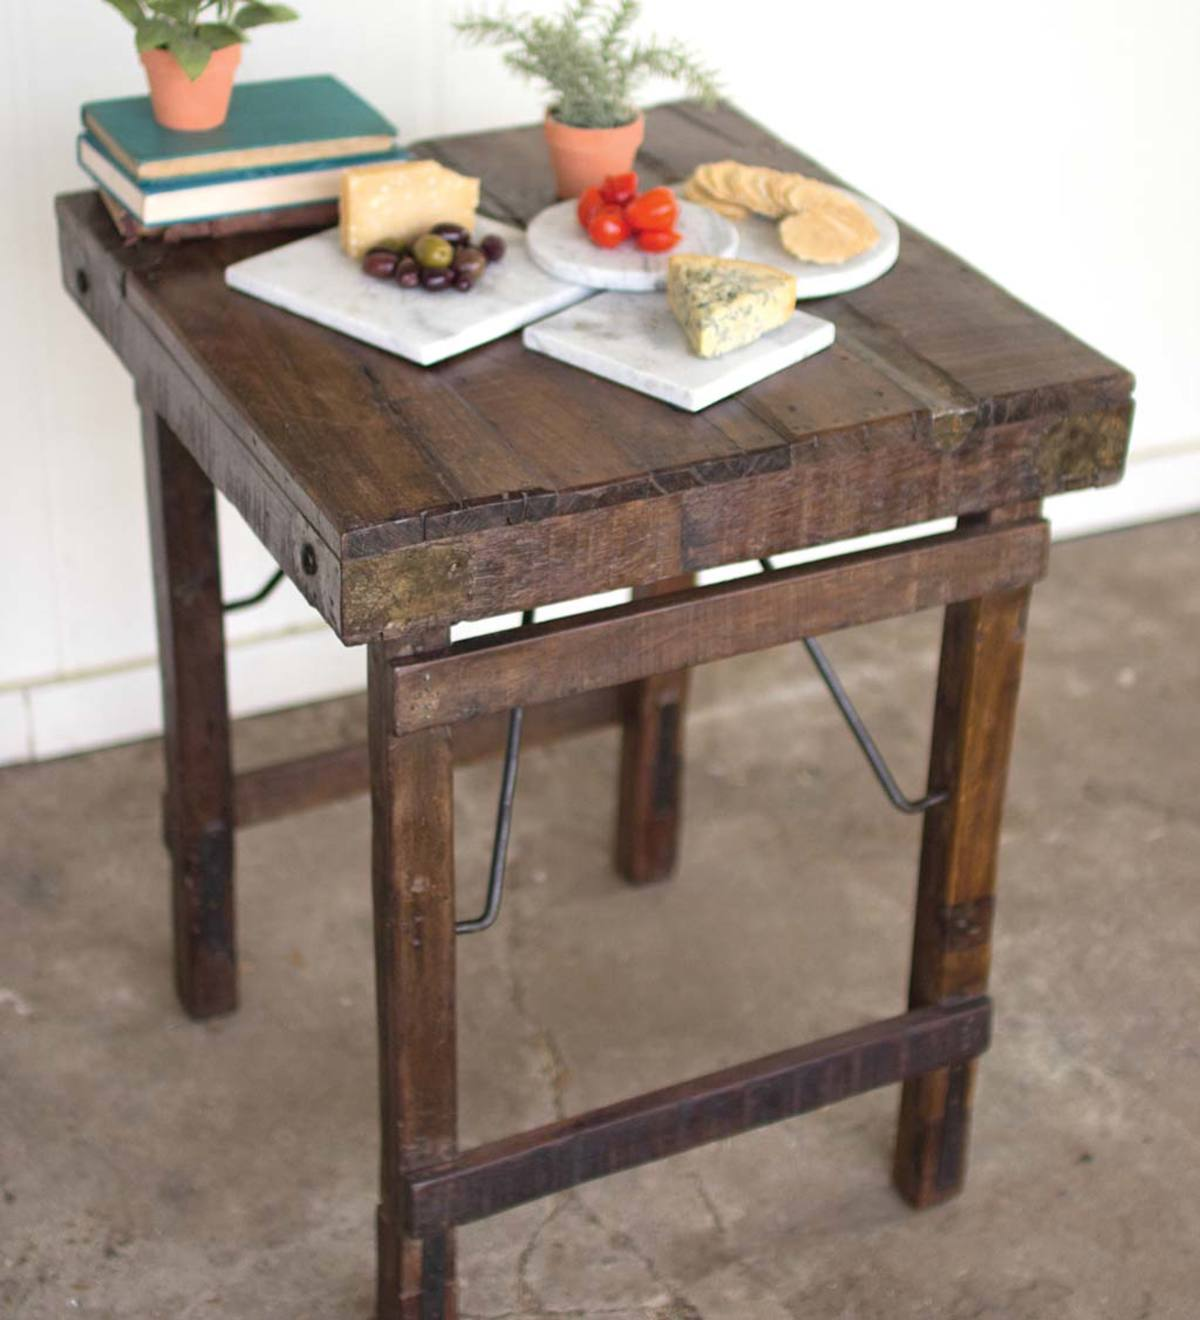 Reclaimed Antique Wooden Side Table with Folding Legs